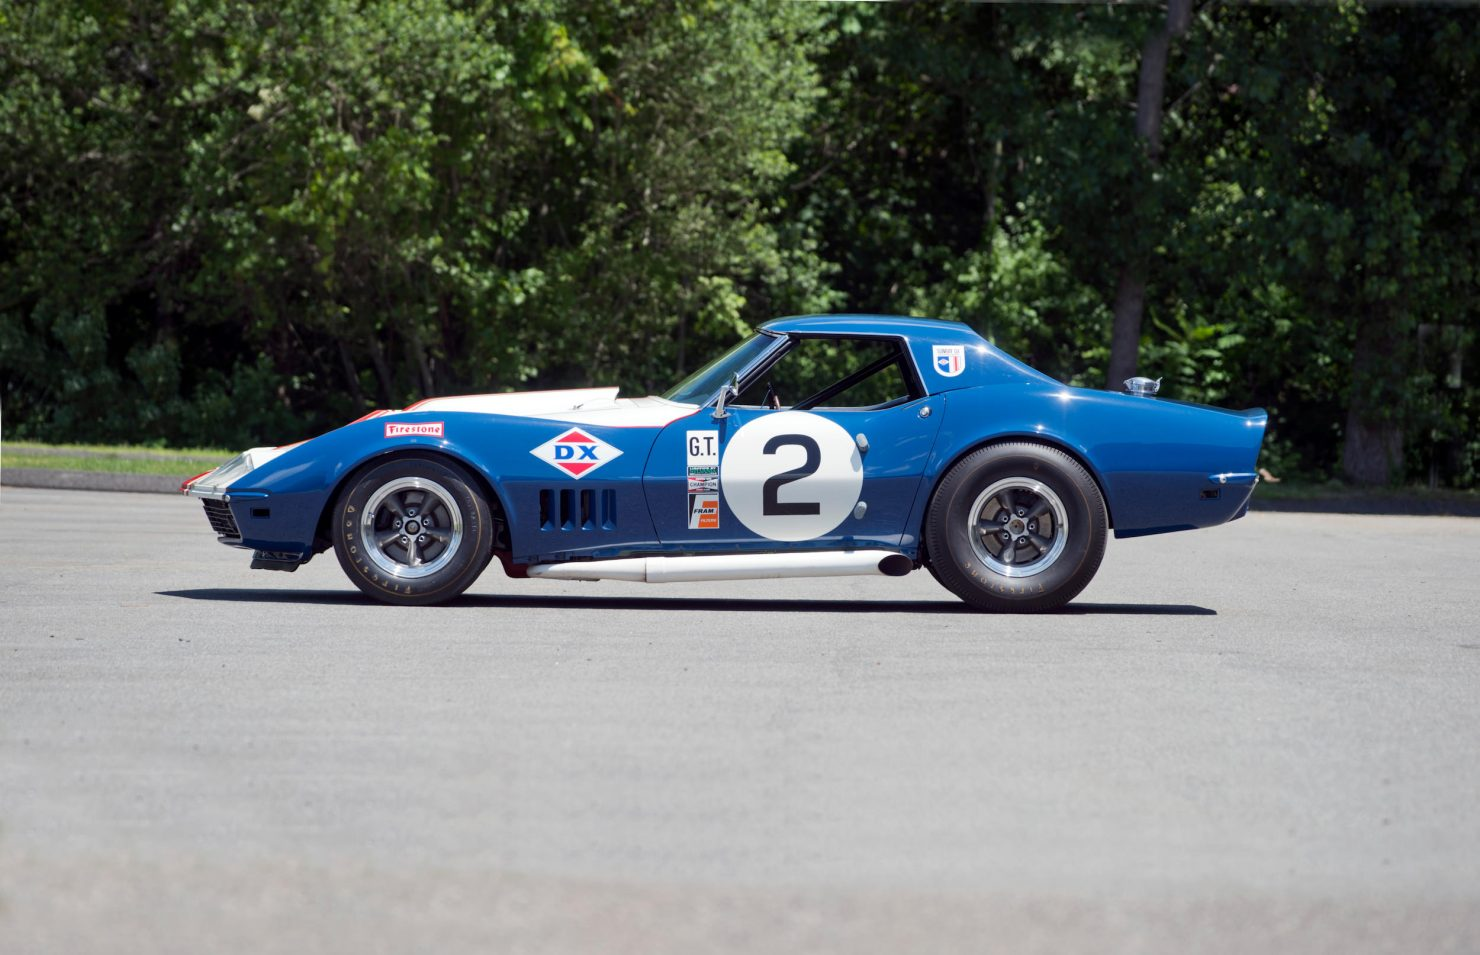 Chevrolet Corvette L88 9 1480x955 - 1968 Chevrolet Corvette L88 Sunray-DX Race Car